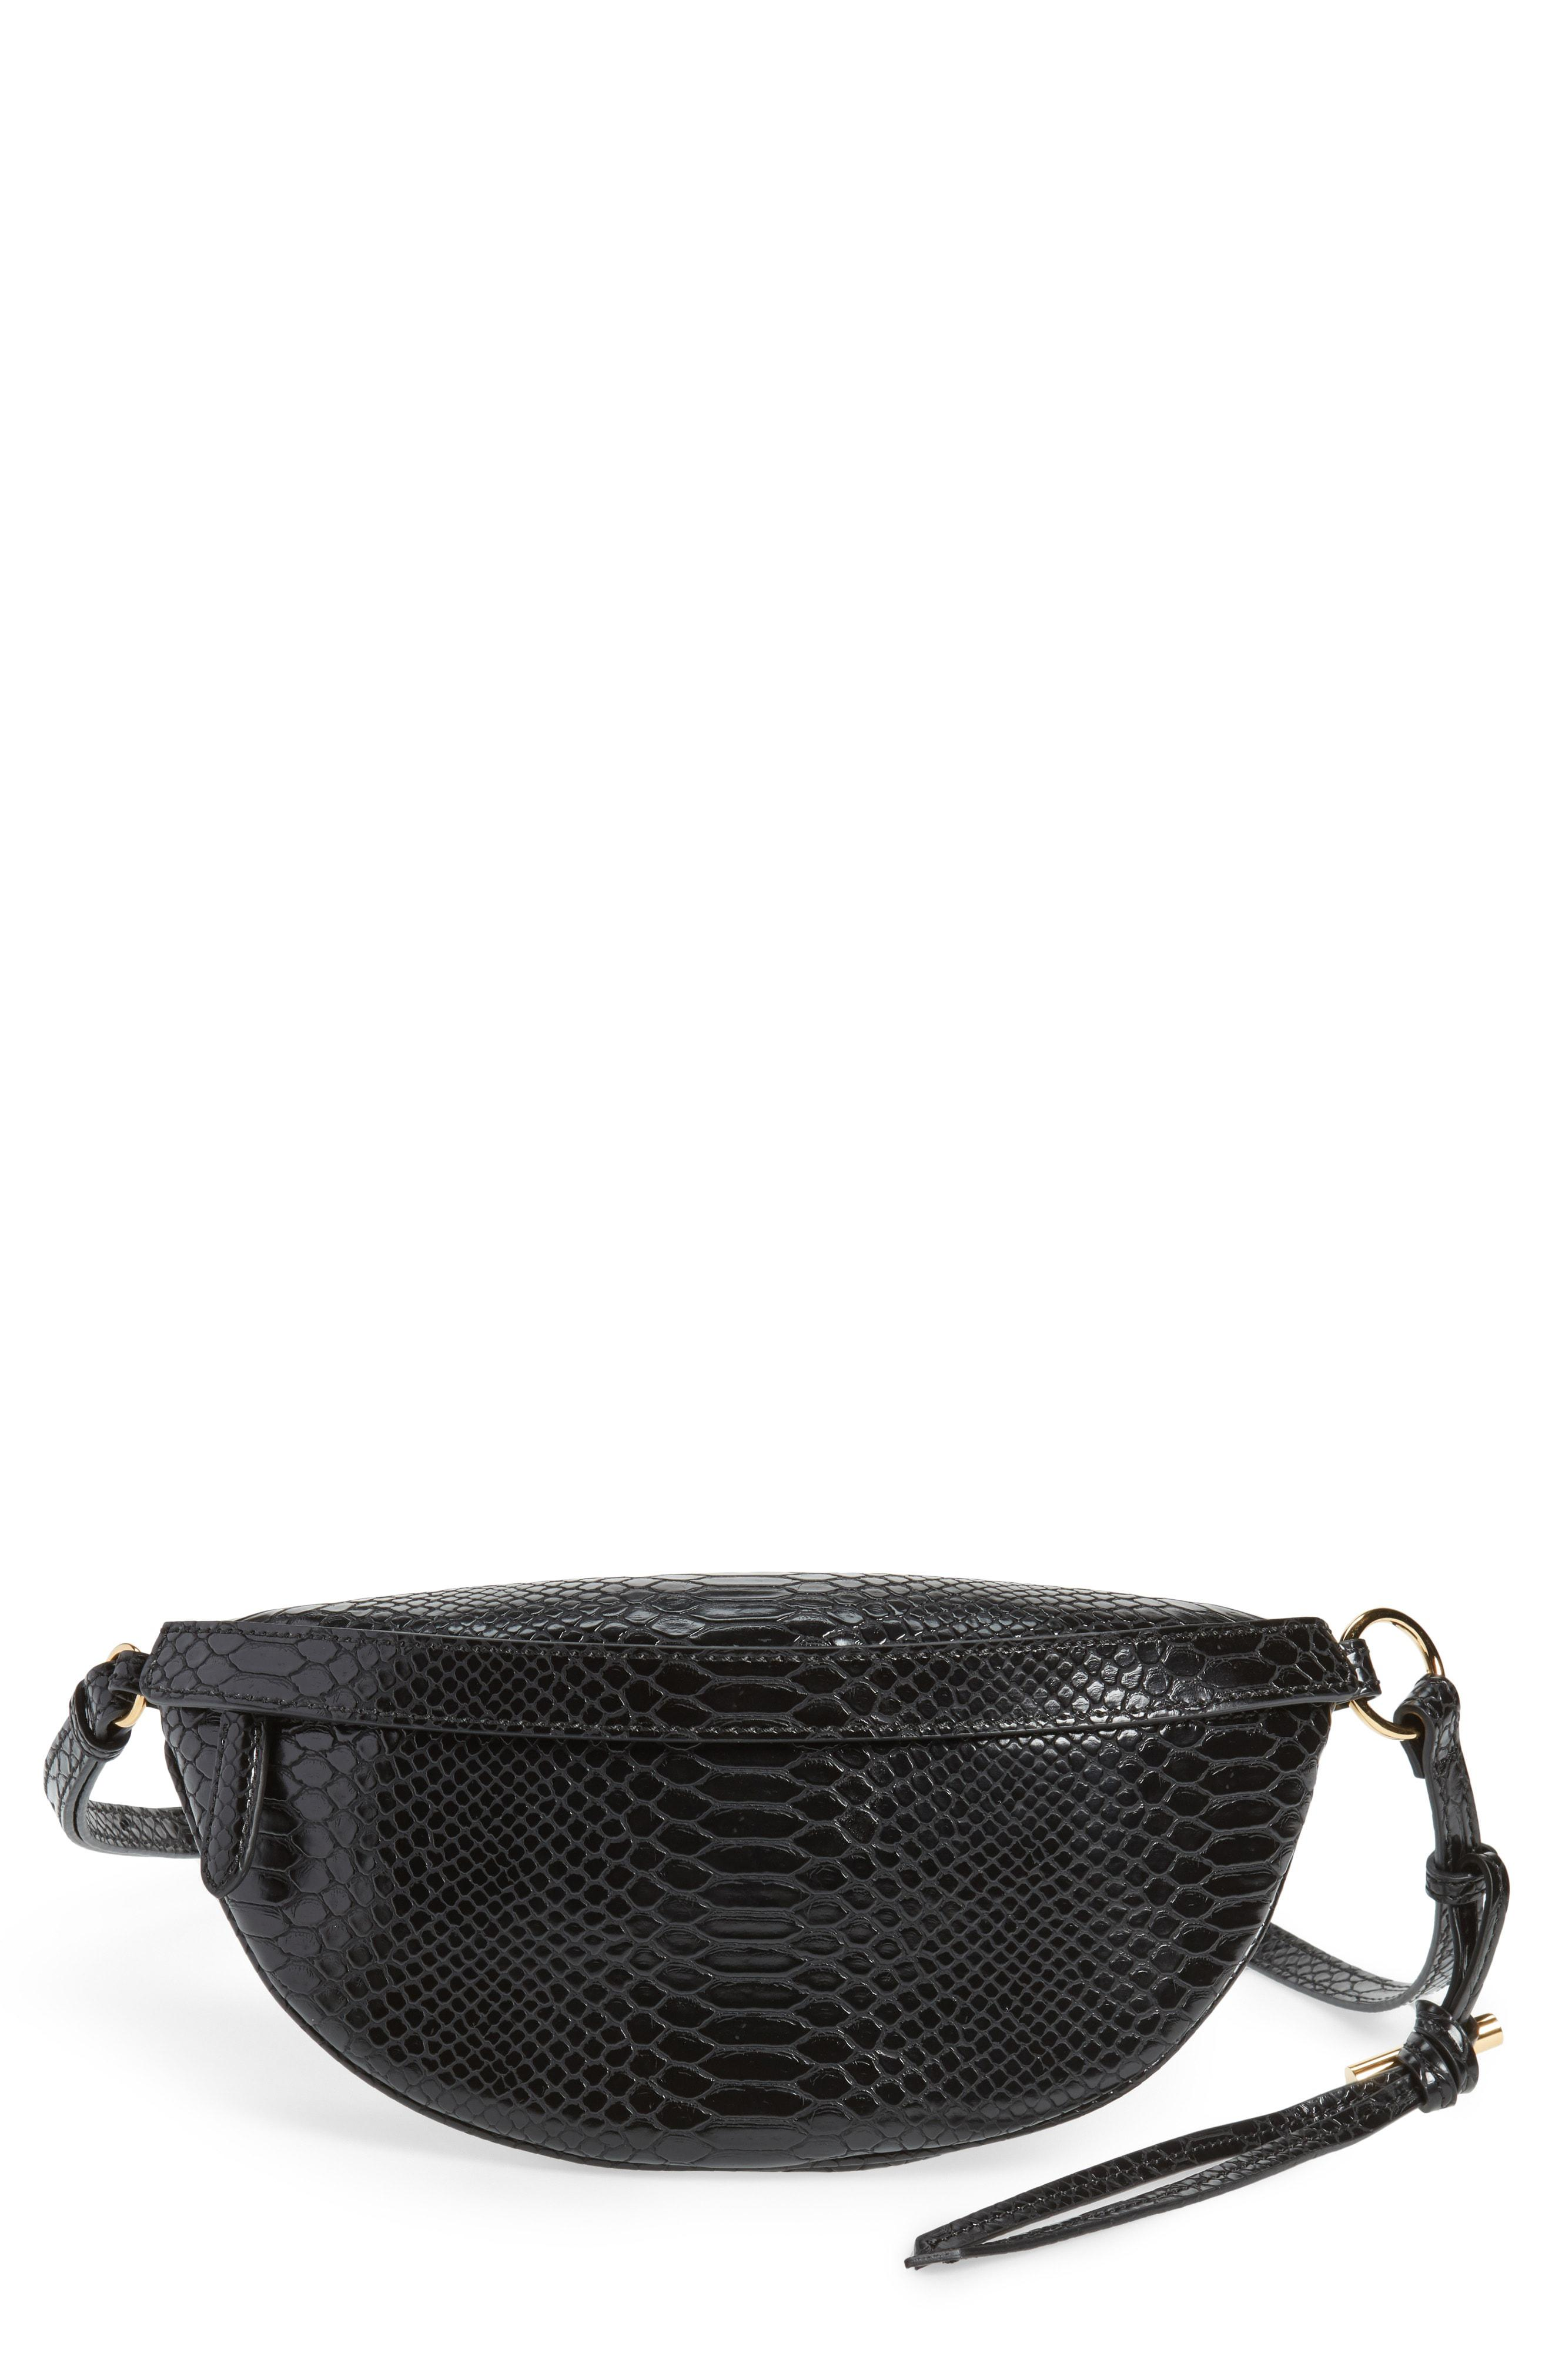 55e12e31c5ee32 Stella McCartney Alter Snake Faux Leather Fanny Pack in Black - Lyst